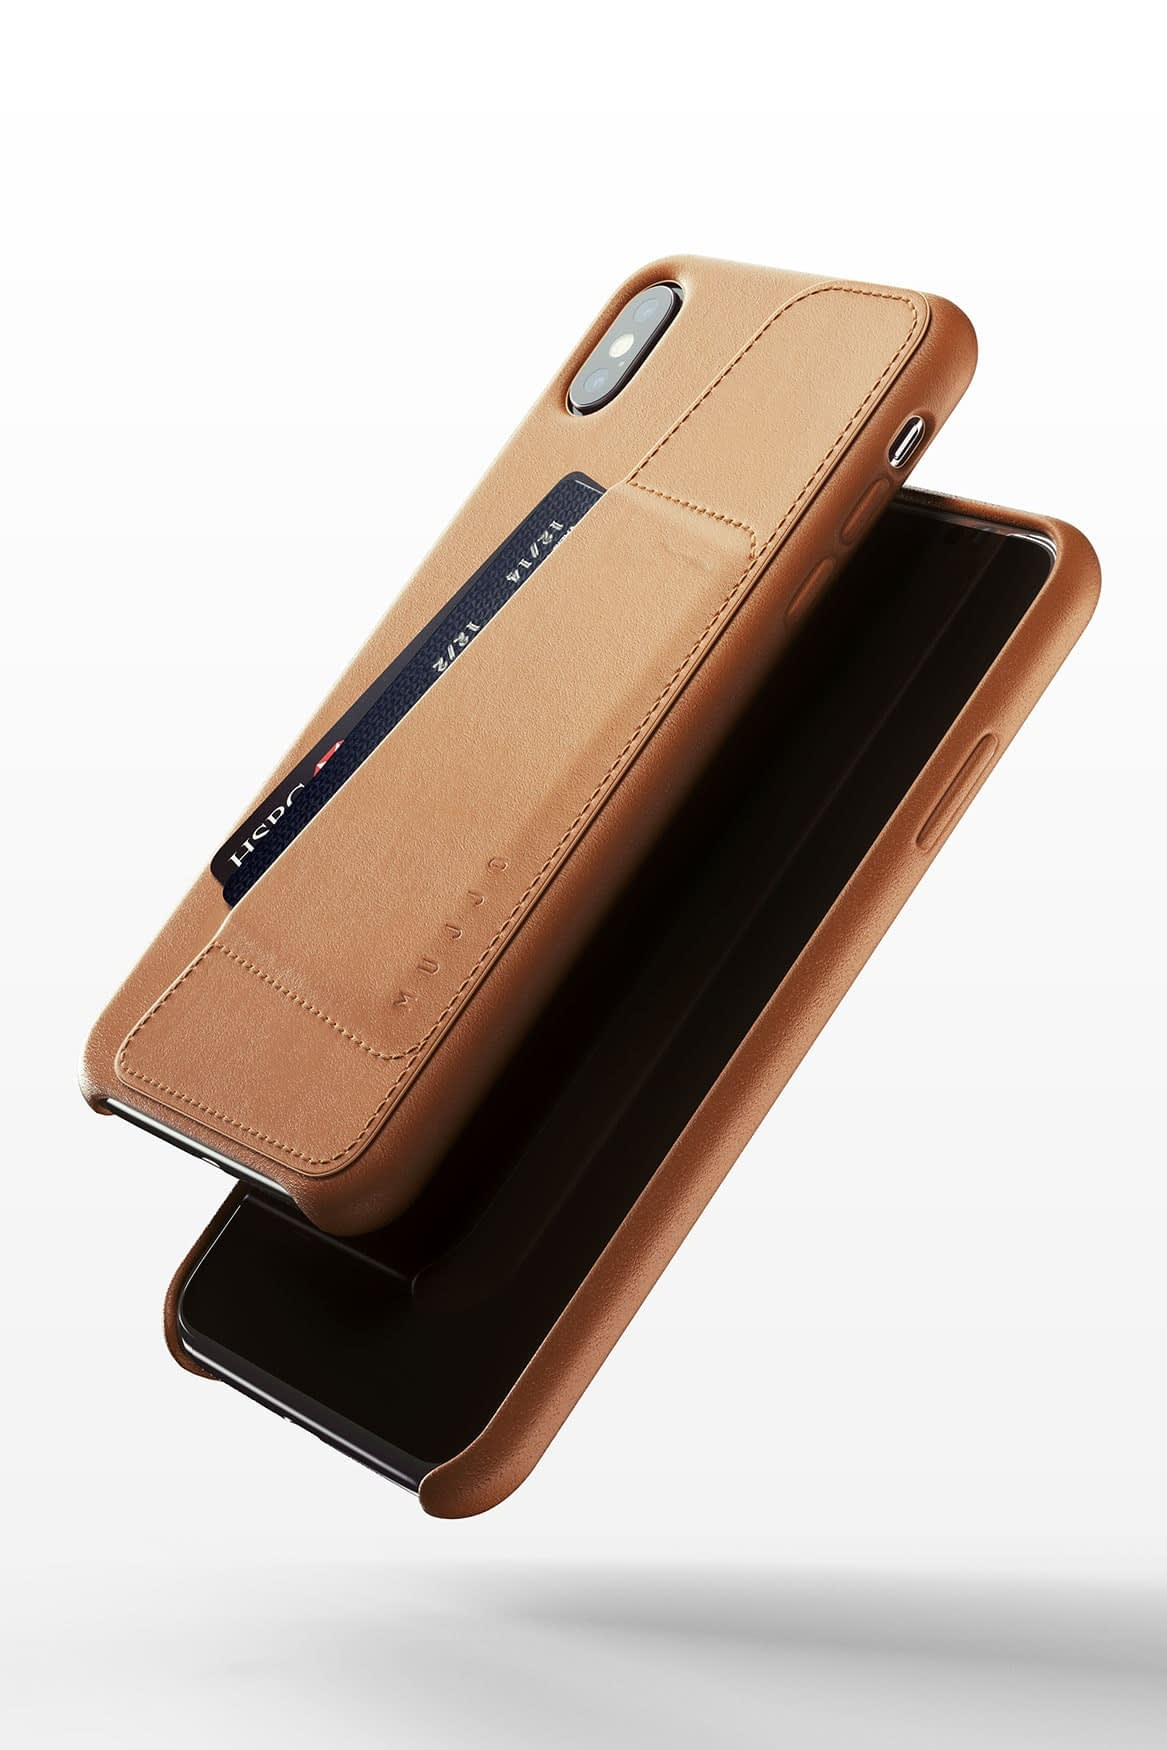 Full leather wallet case for iPhone Xs Max Tan 03 1